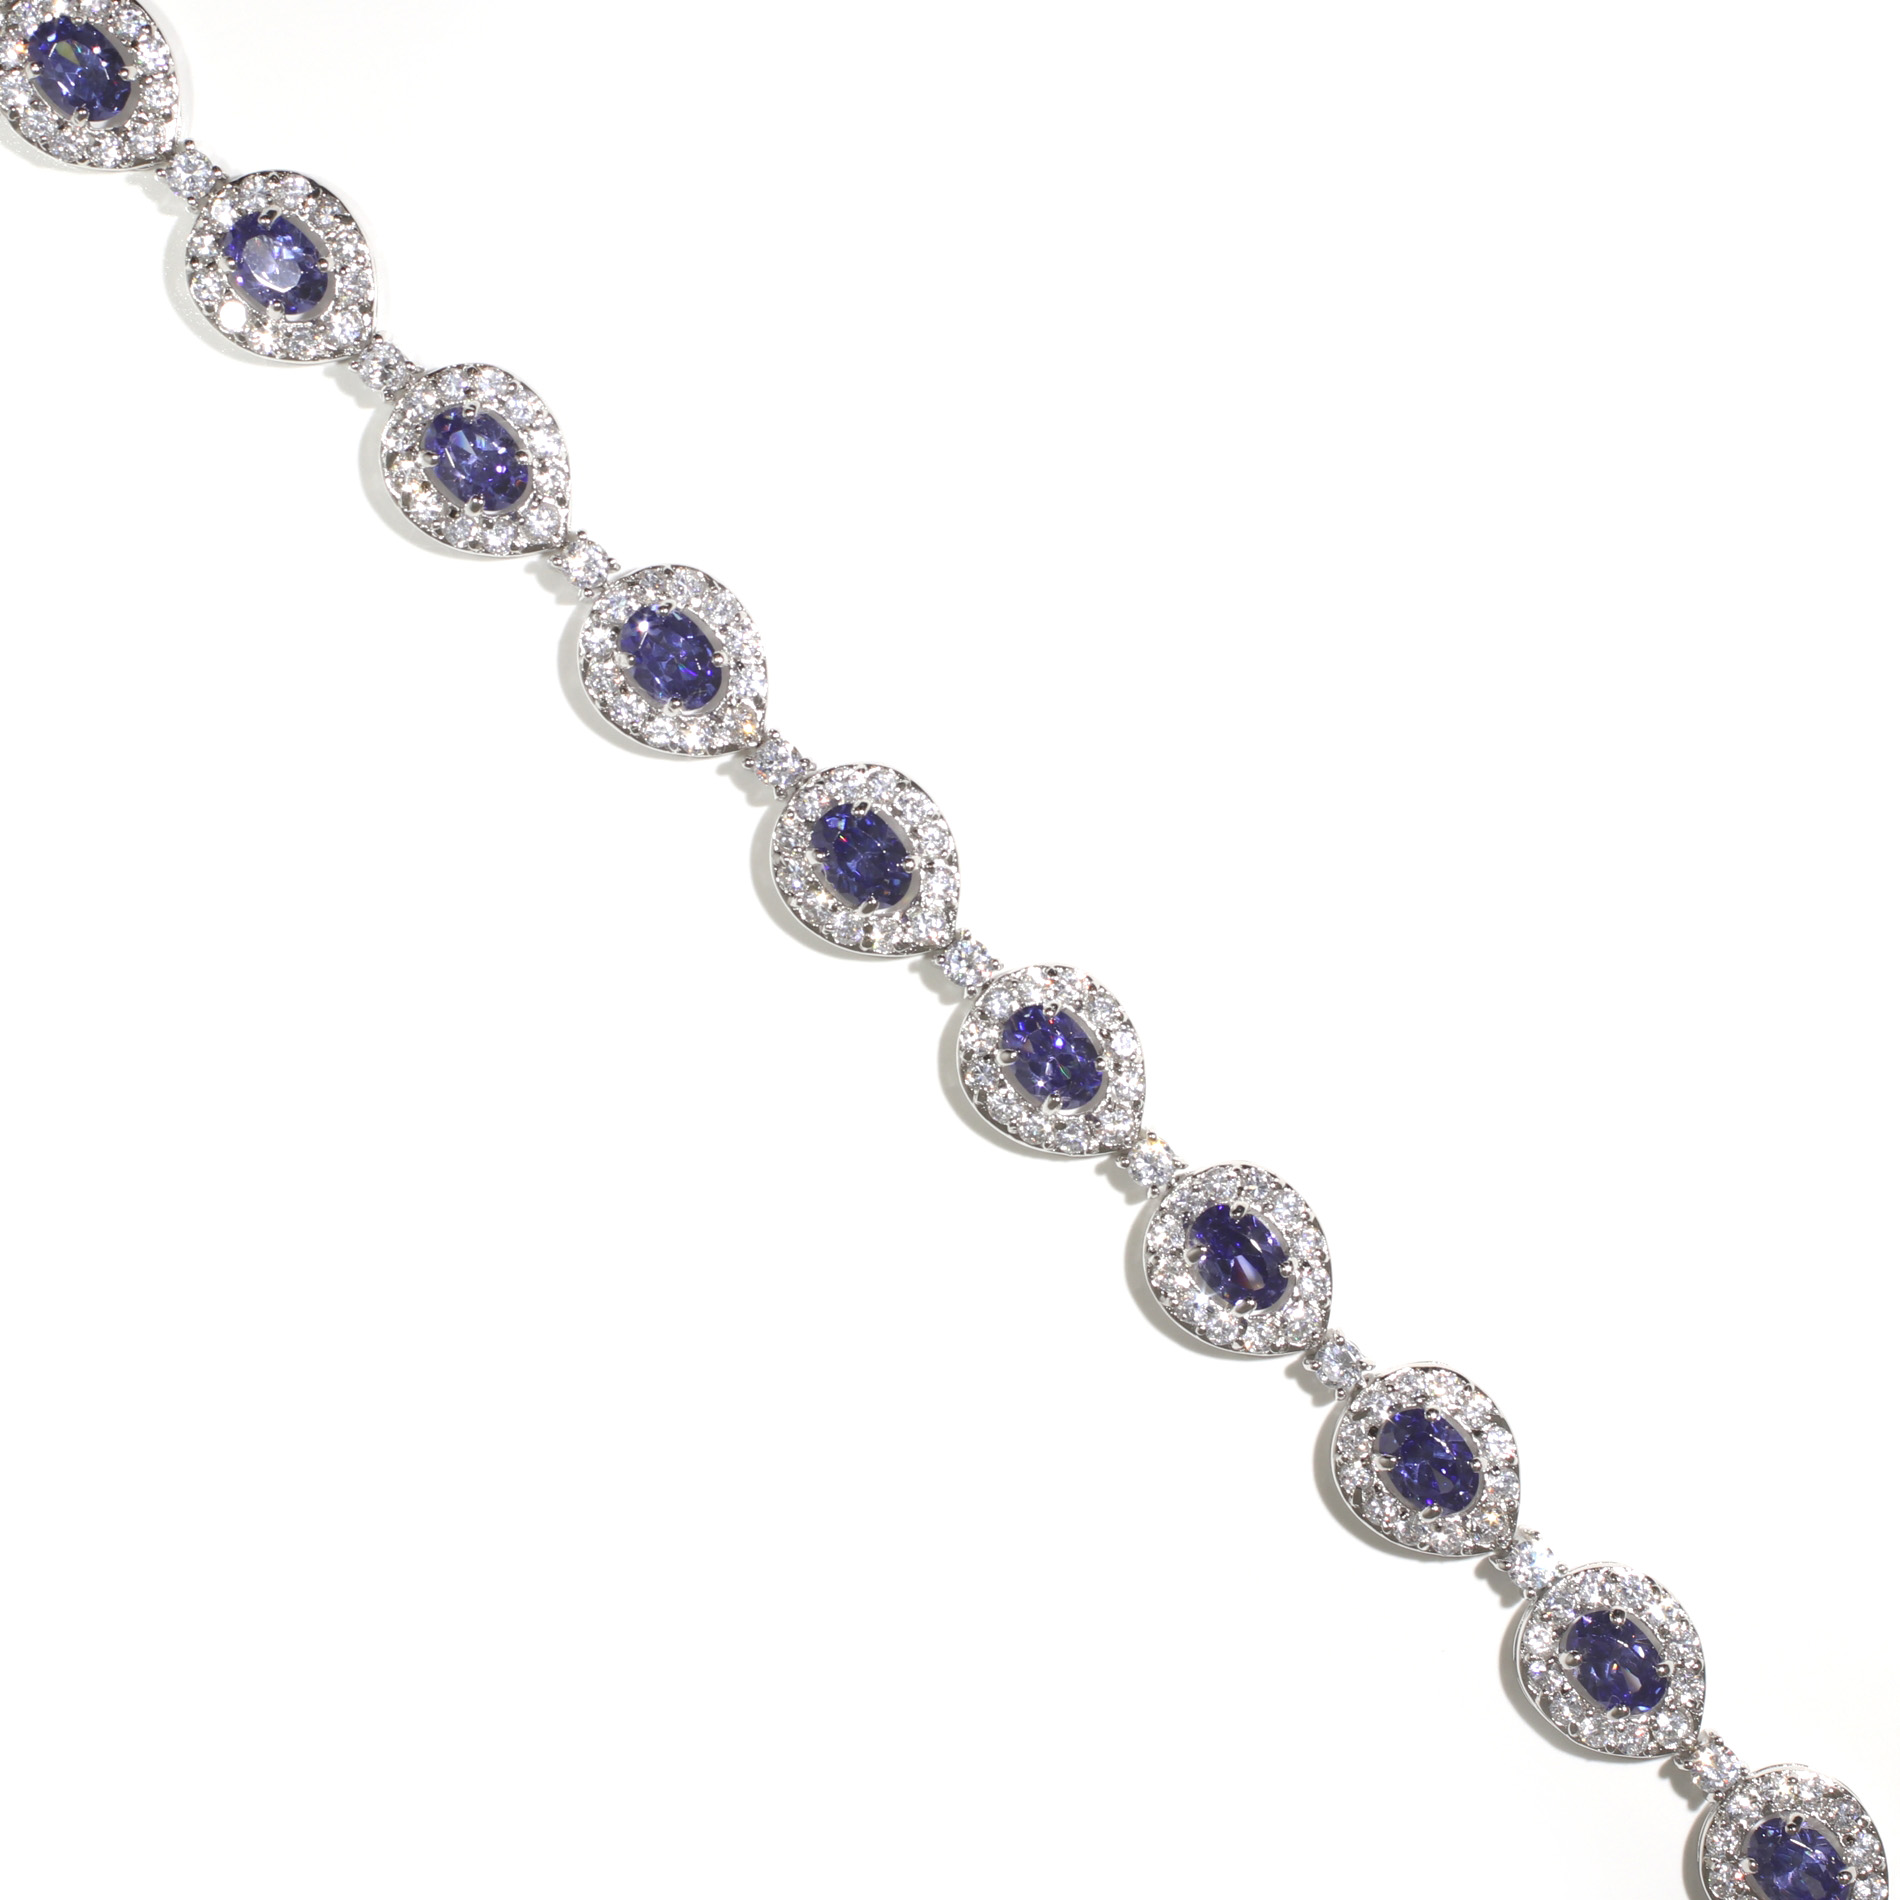 necklace platinum a pin diamonds featuring anniversary aquamarines peacock pendant tiffany central and tanzanite